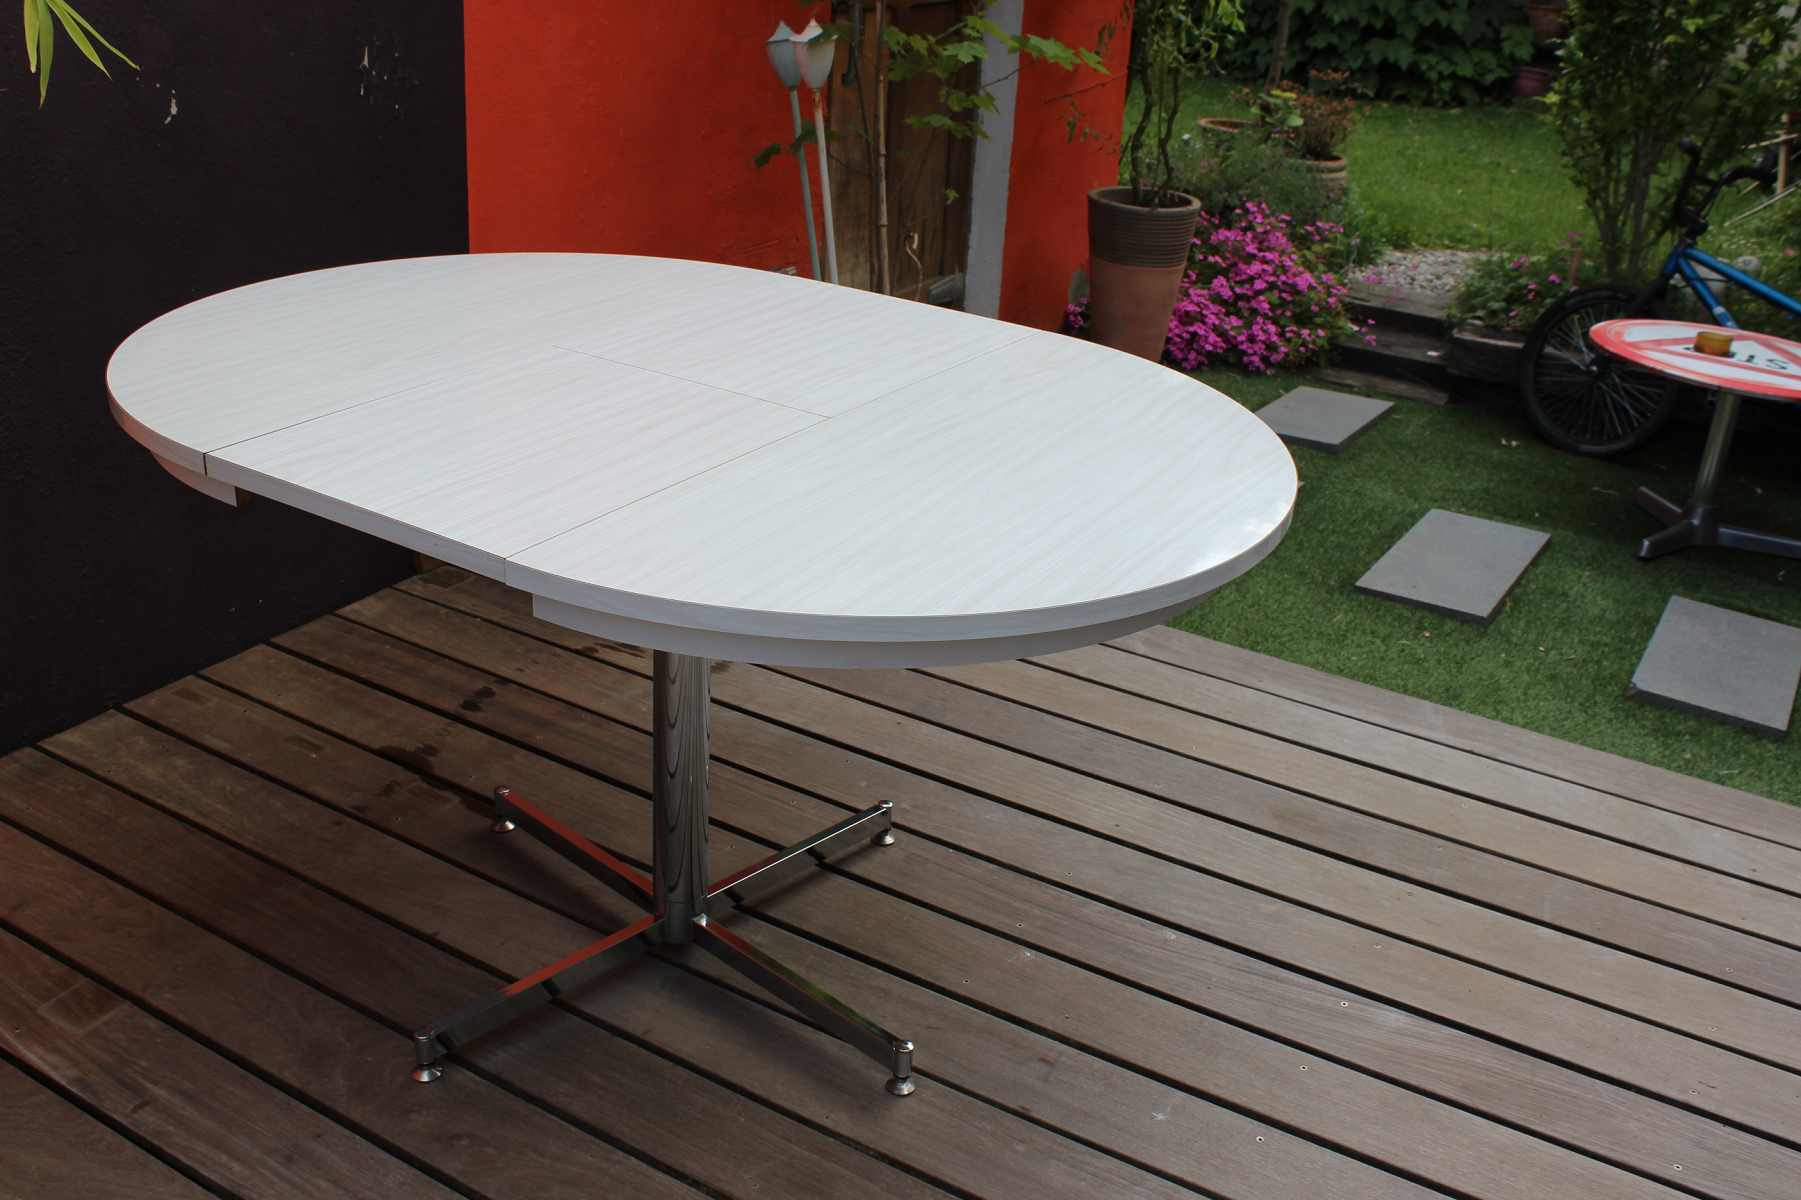 Table formica en version ronde ou ovale vintage by fabichka for Table de cuisine avec rallonge